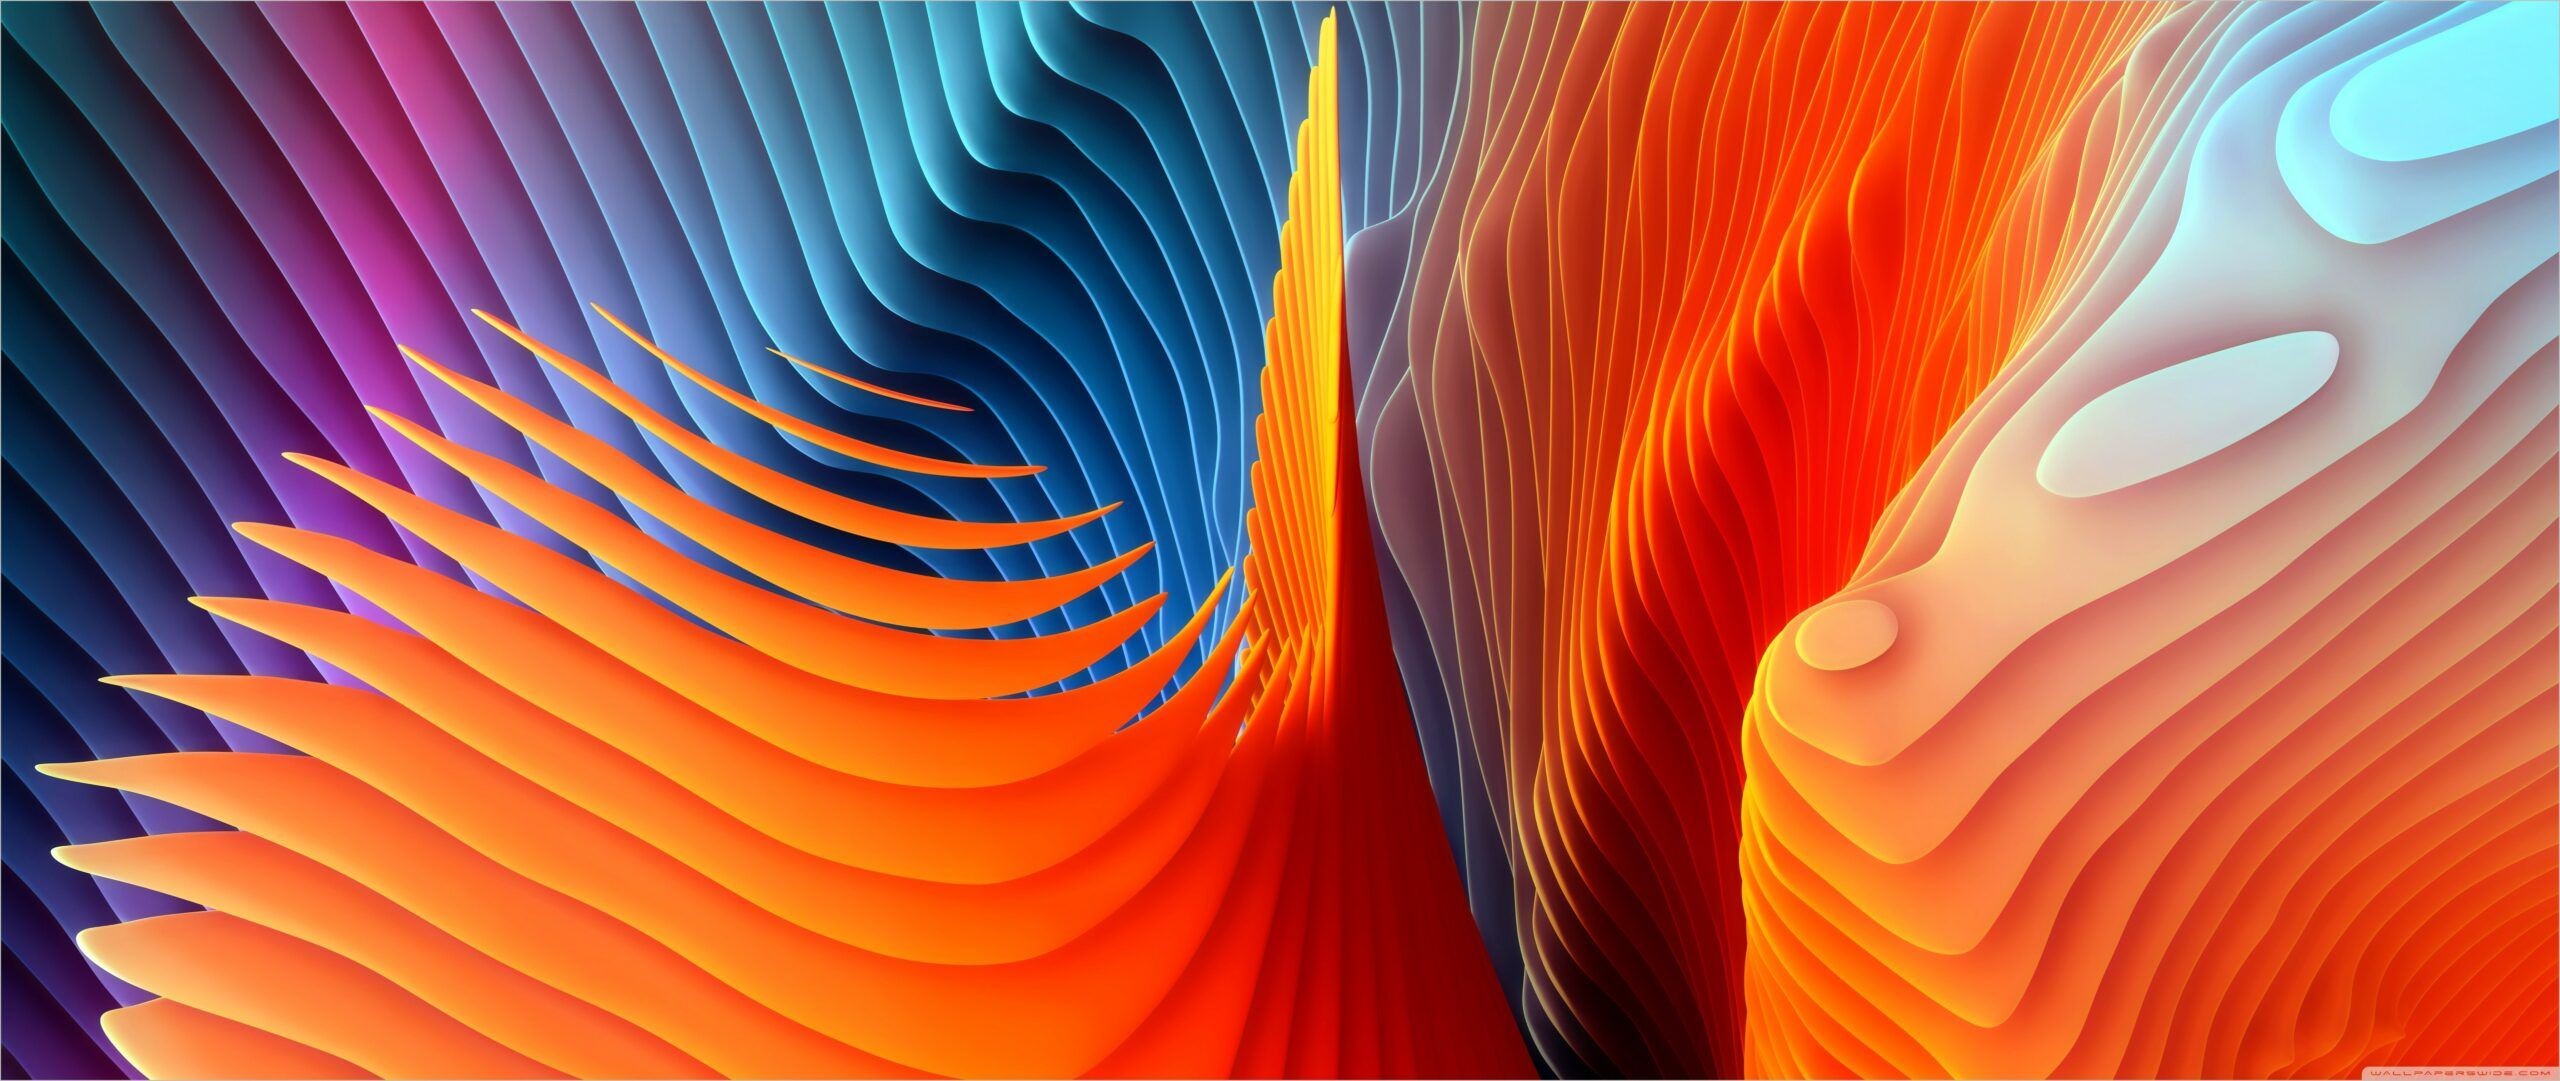 Abstract Waves Wallpaper 4k In 2020 Mac Os Wallpaper Os Wallpaper Abstract Wallpaper